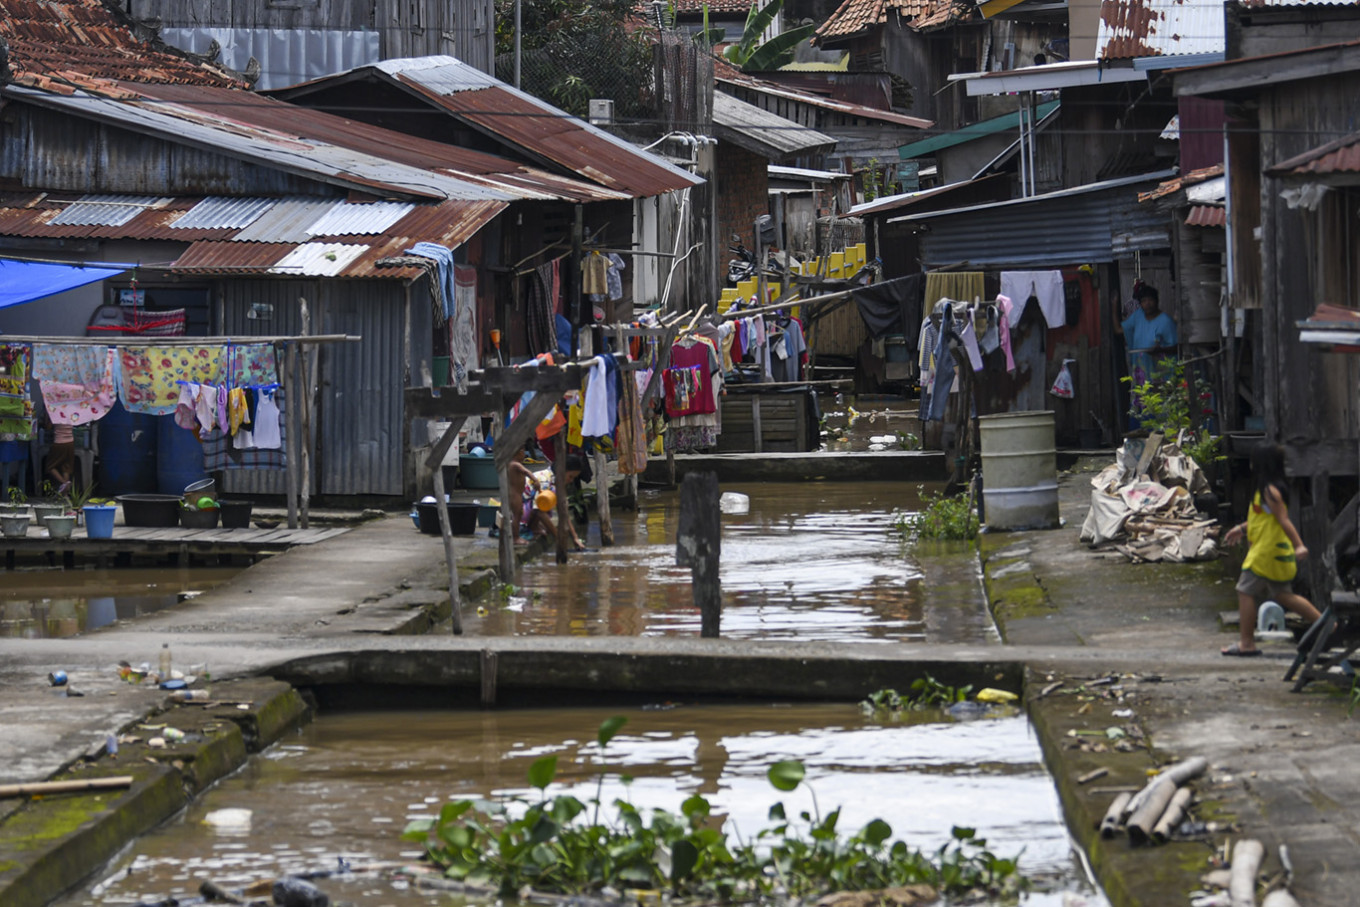 Poverty rate rises in March as pandemic hits vulnerable communities